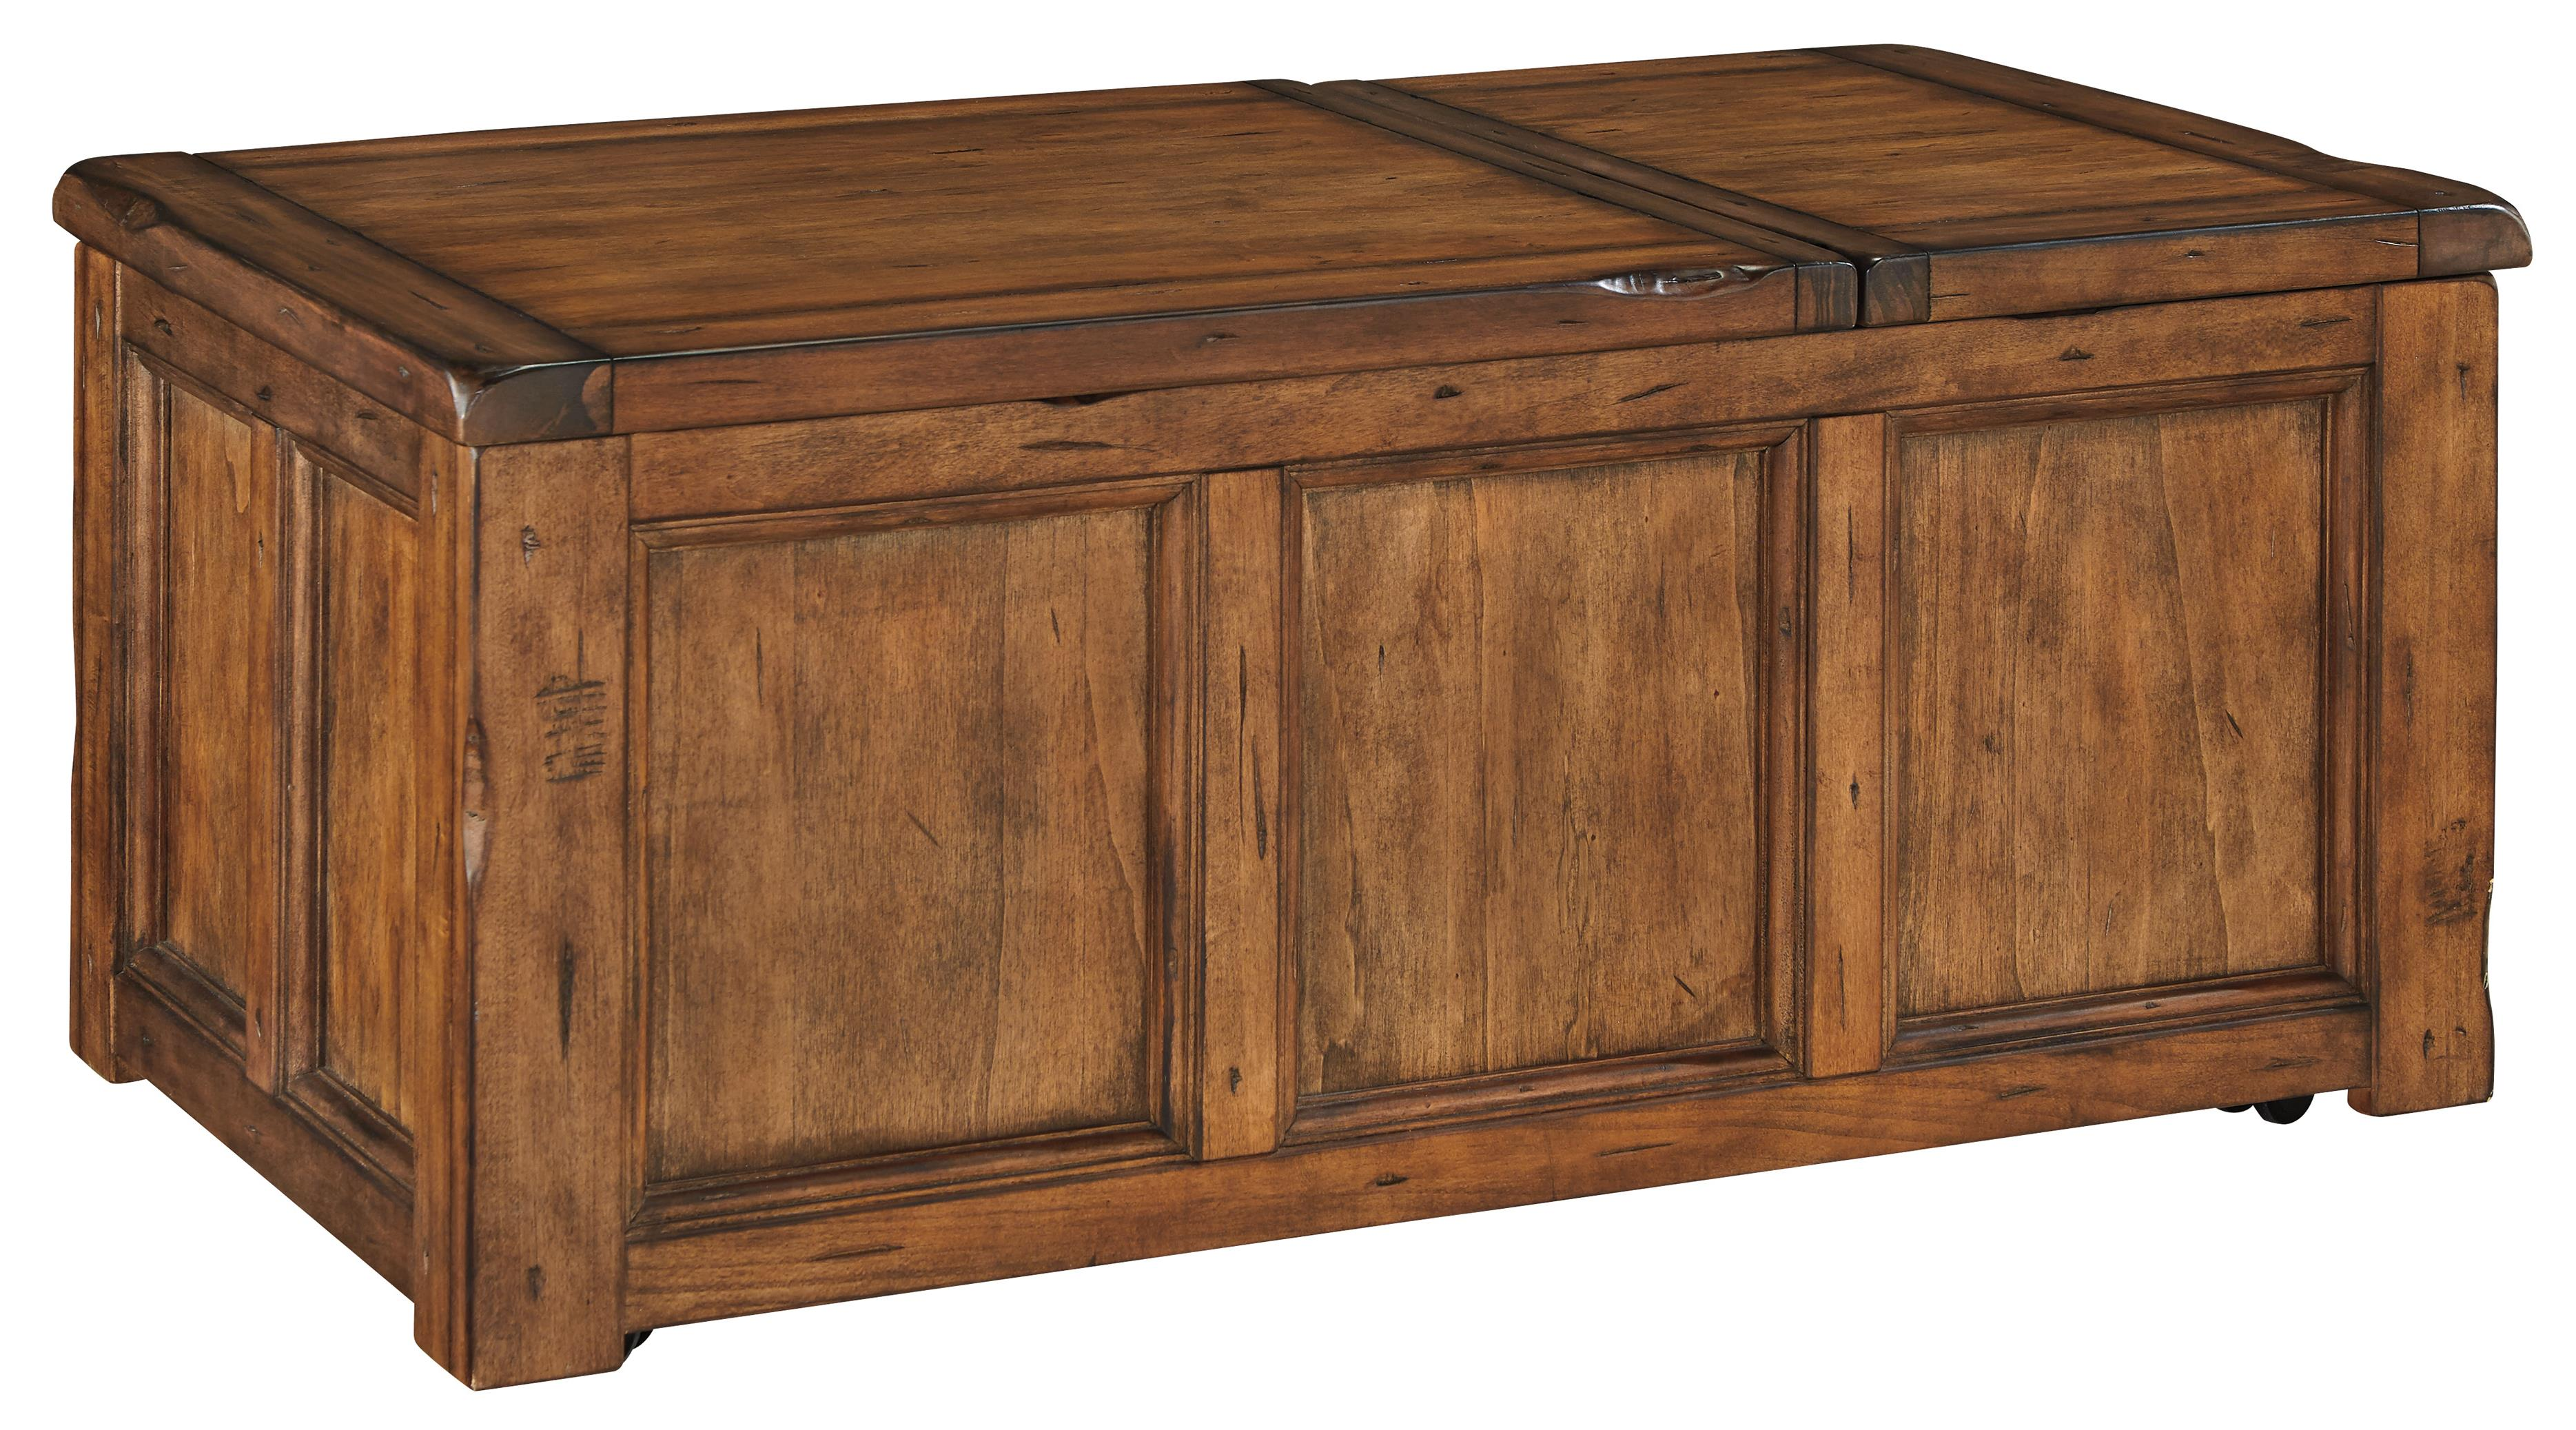 Rustic Trunk Style Rectangular Lift Top Cocktail Table